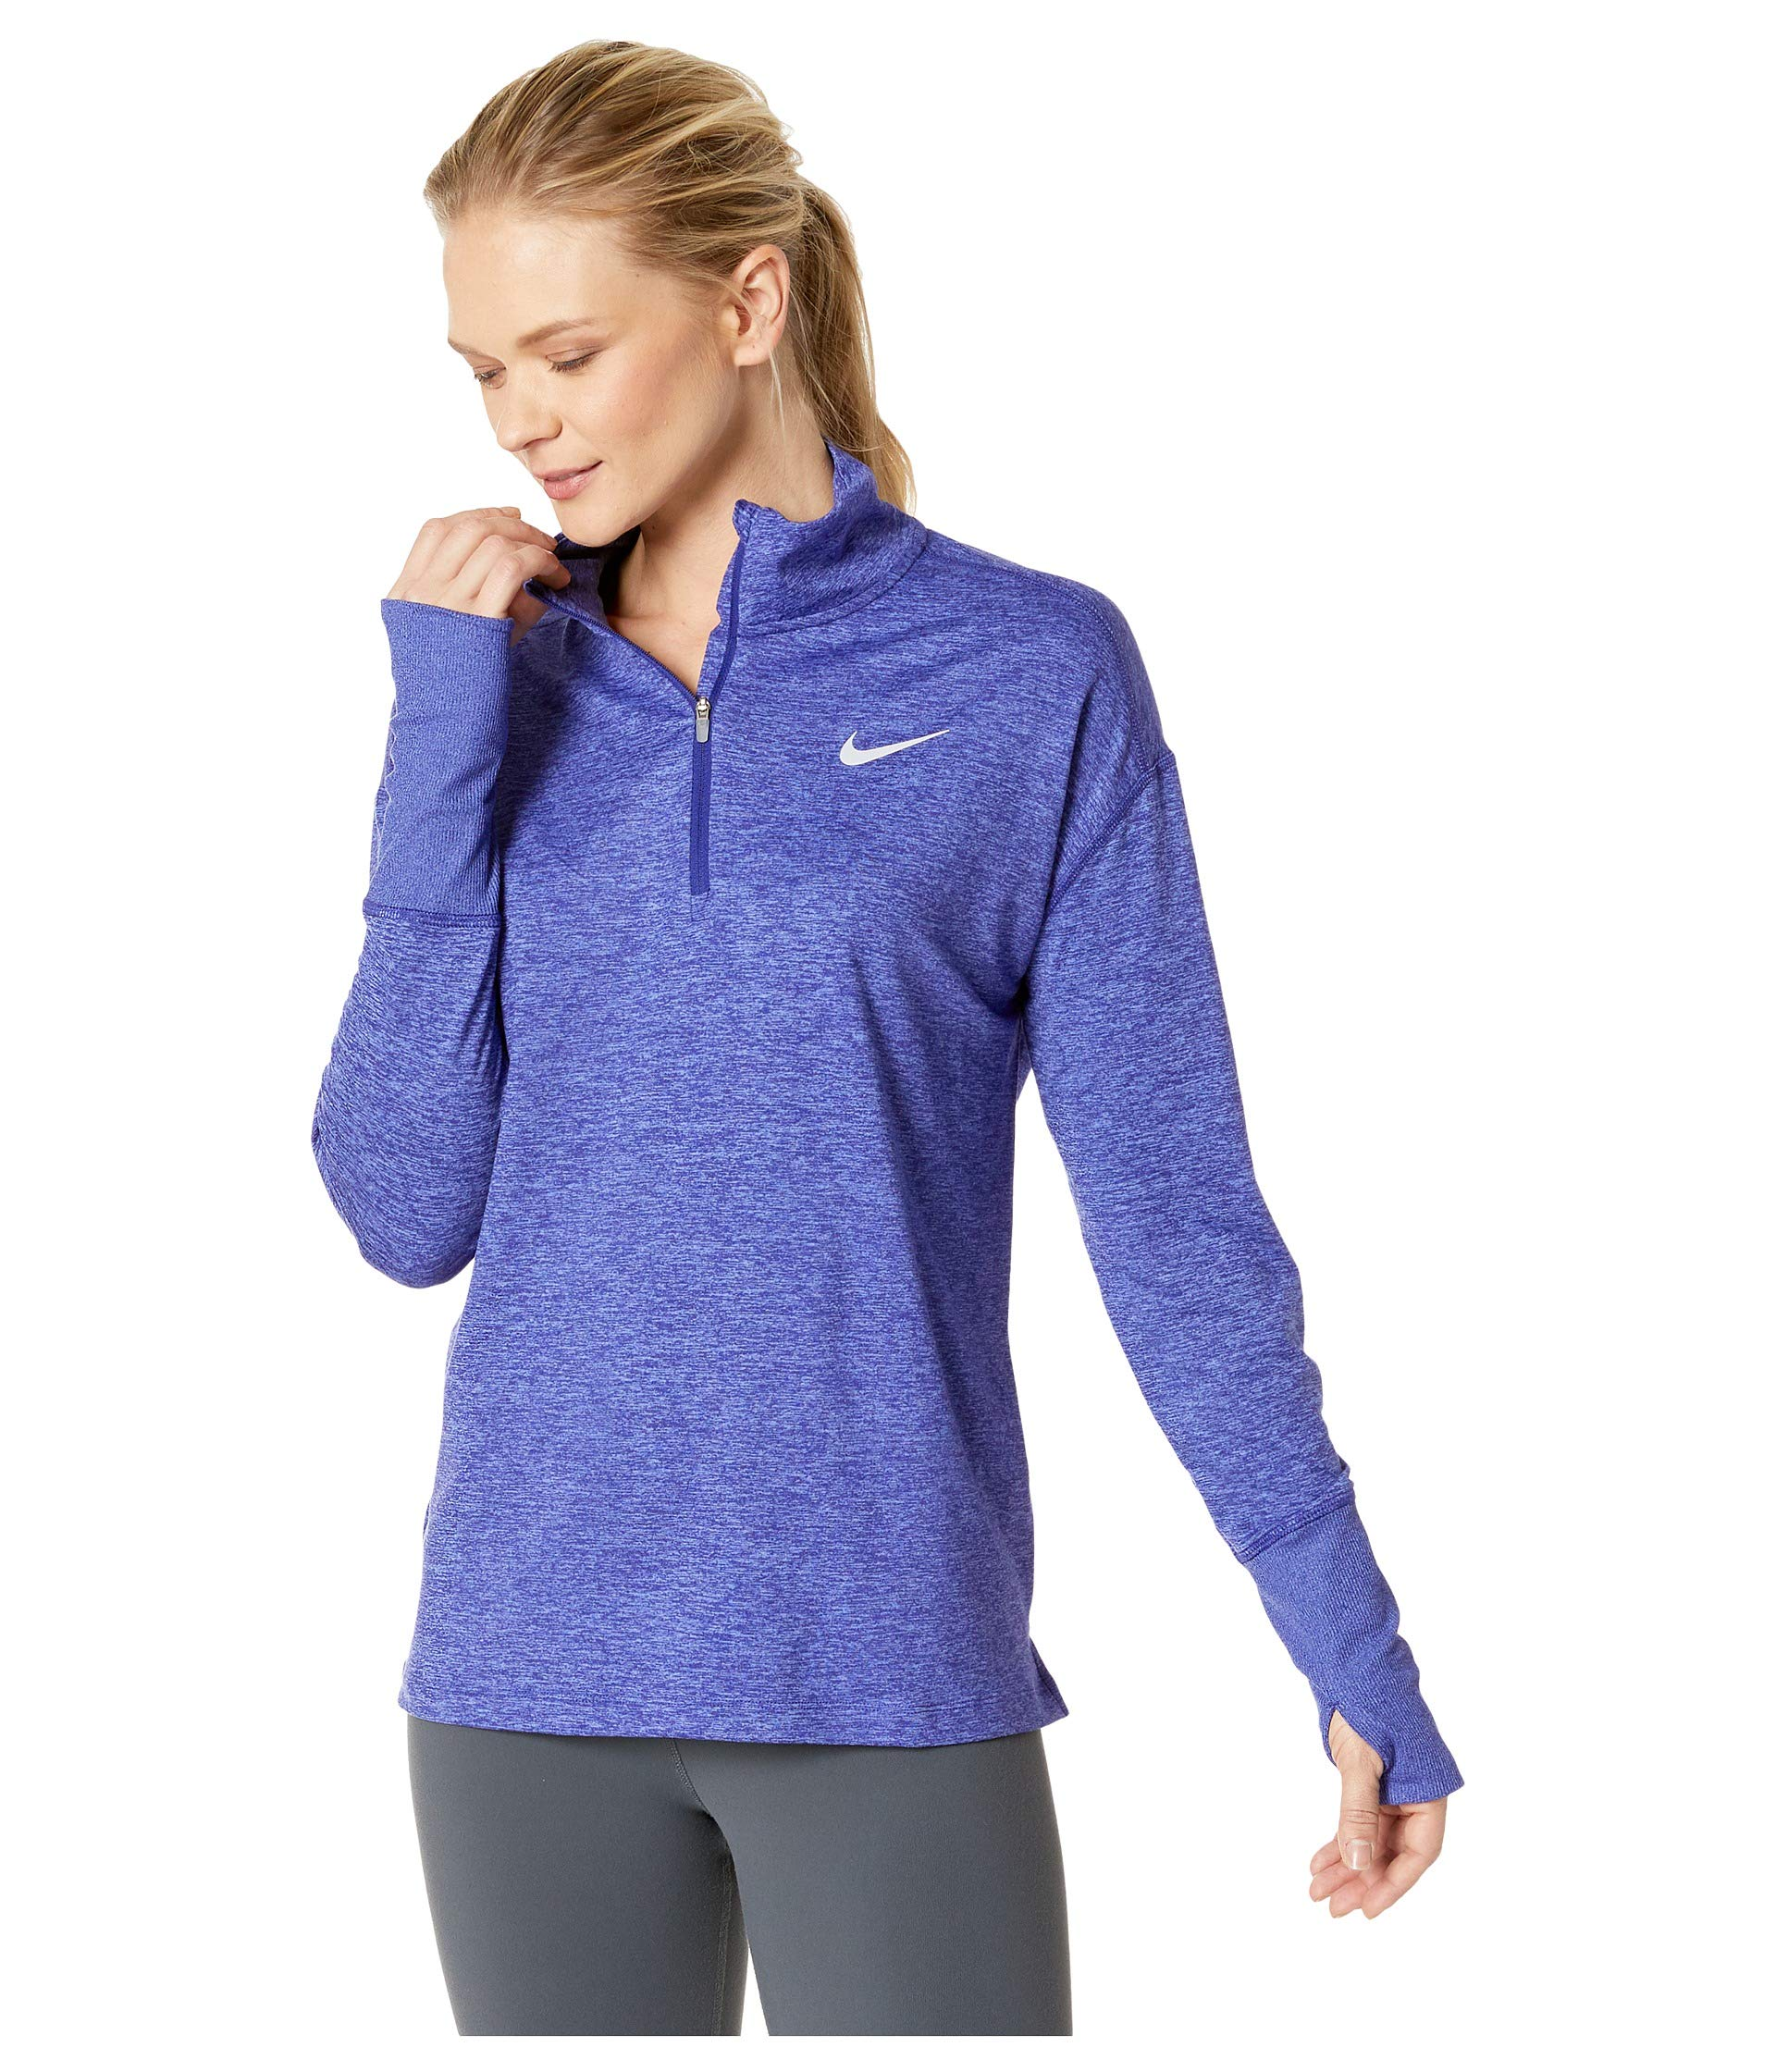 Nike Women's Element 1/2 Zip Running Top Regency Purple/Rush Violet/Heather Size Small by Nike